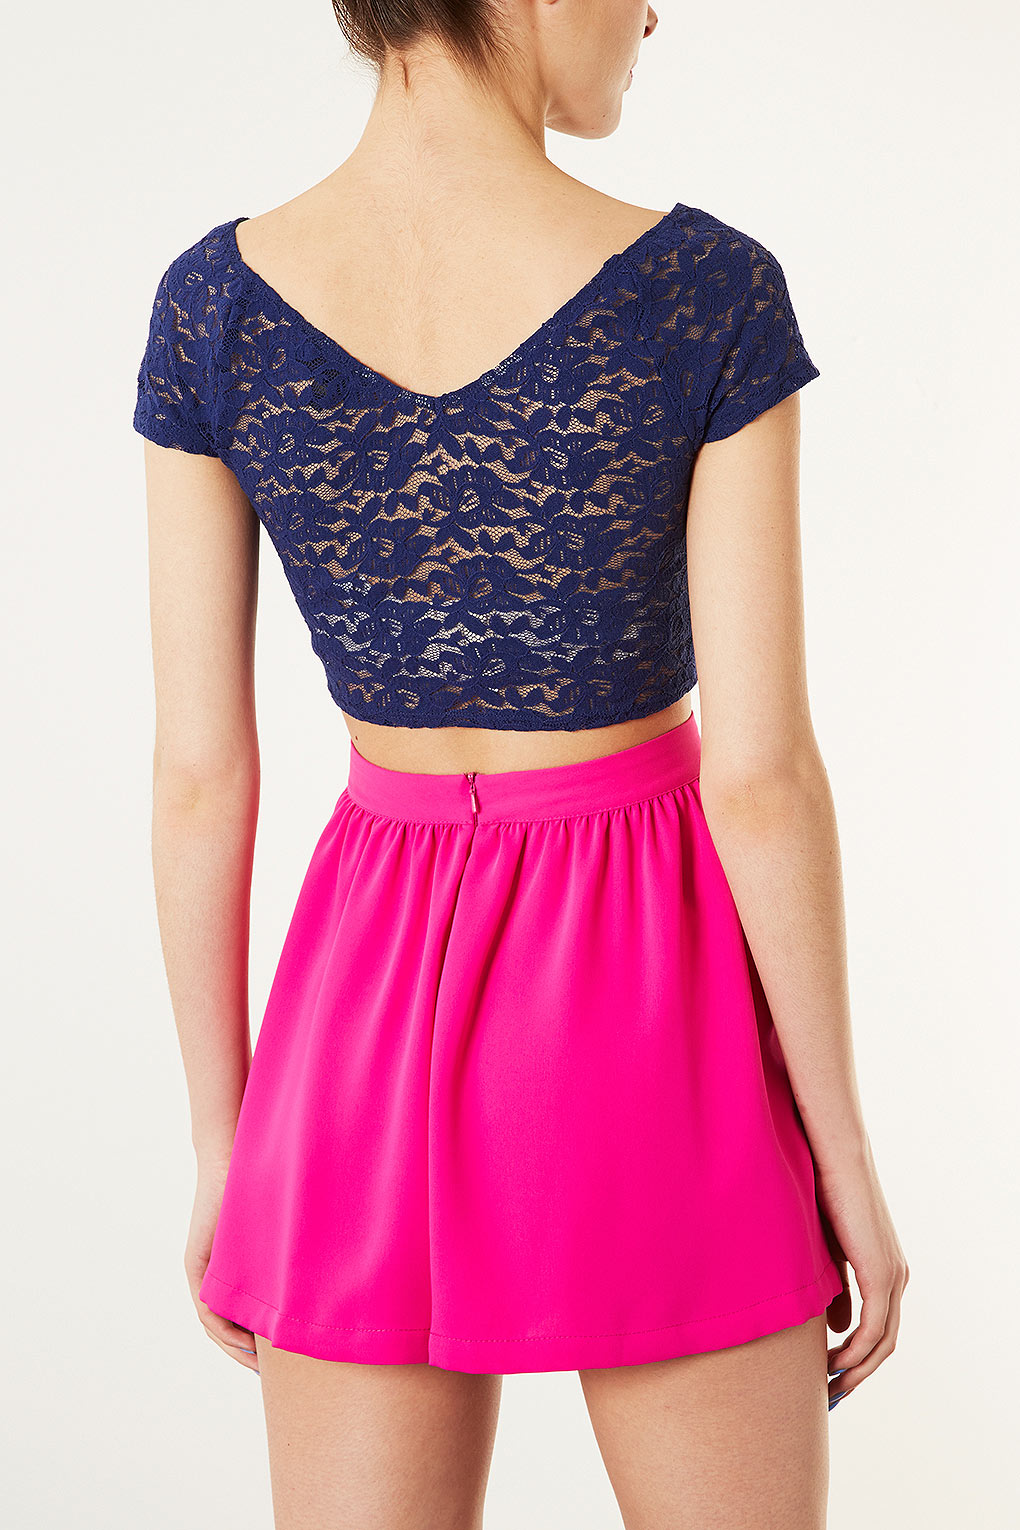 topshop lace bardot crop top in blue